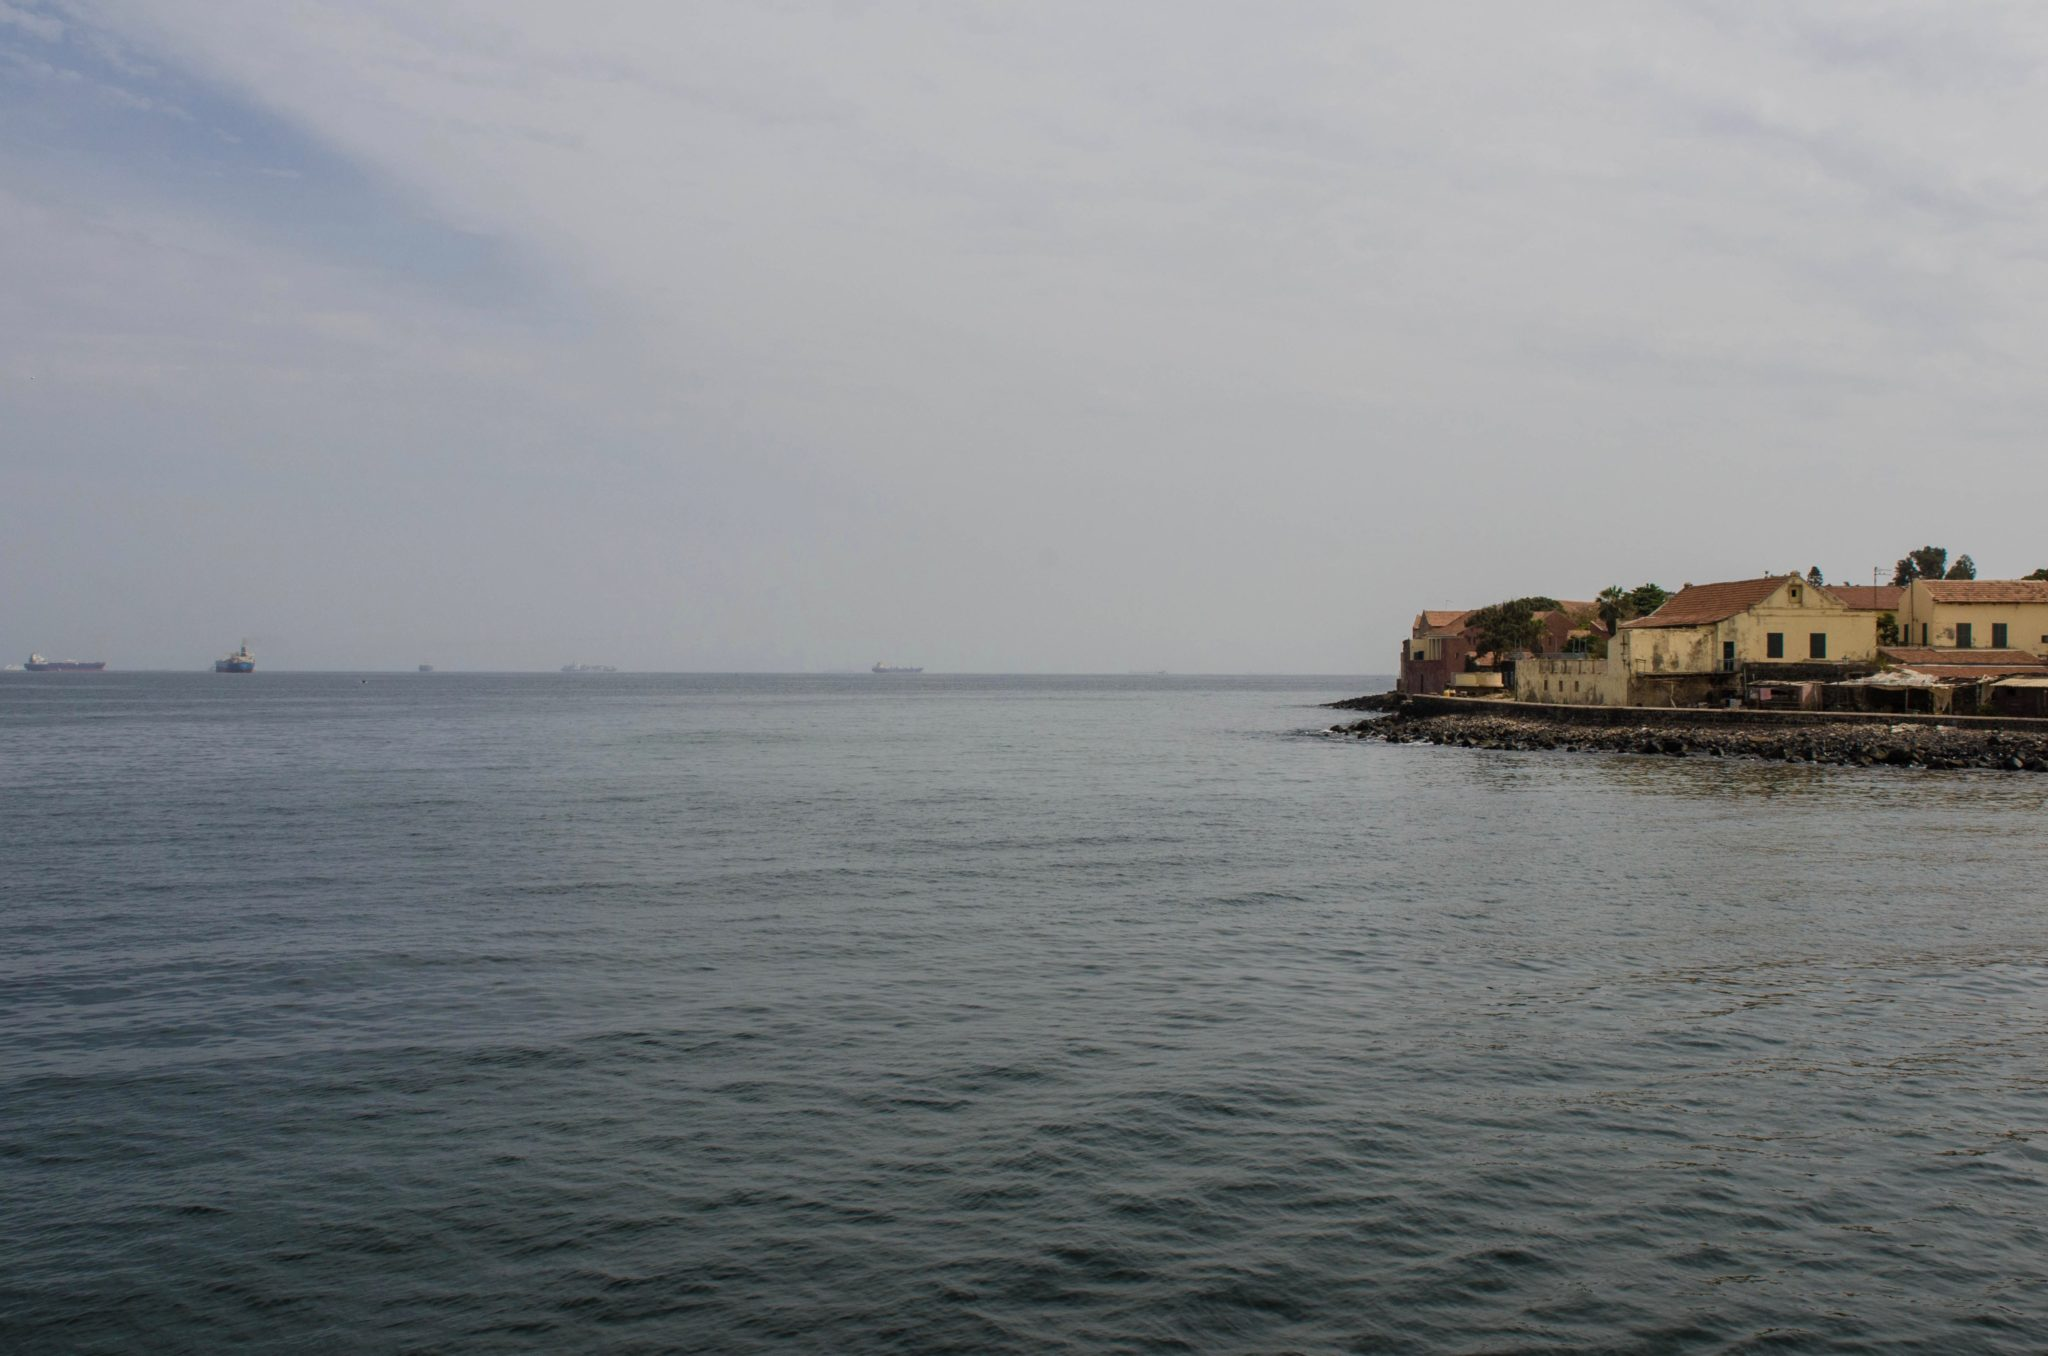 Day trips from Dakar: So close to Dakar and yet so calm, Ile de Goree